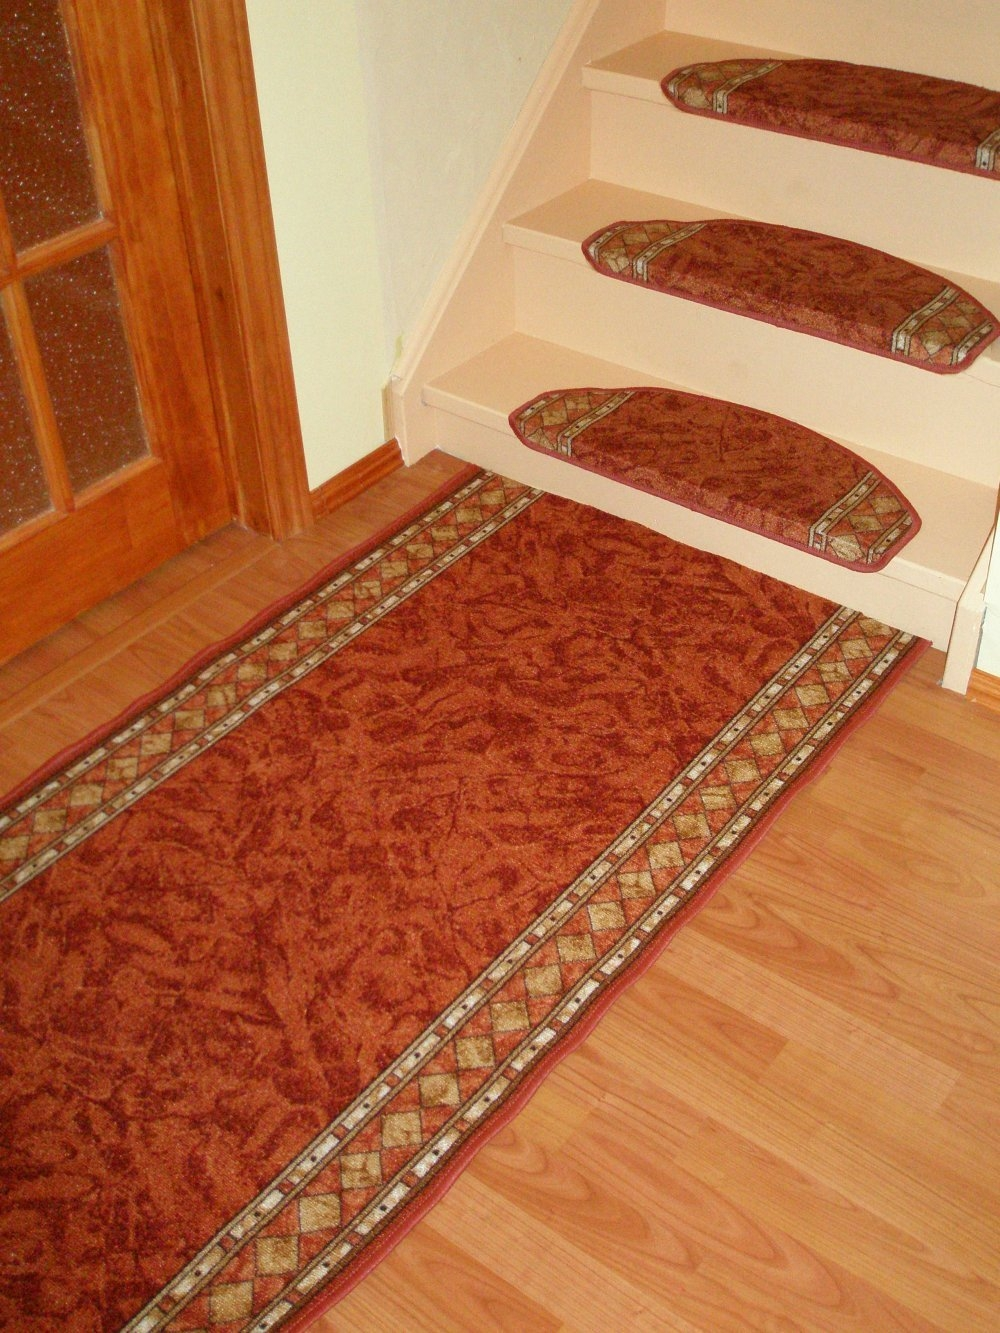 High Quality Carpet Stair Treads Made In Europe Buy In Canada With Regard To Diy Stair Tread Rugs (View 14 of 15)